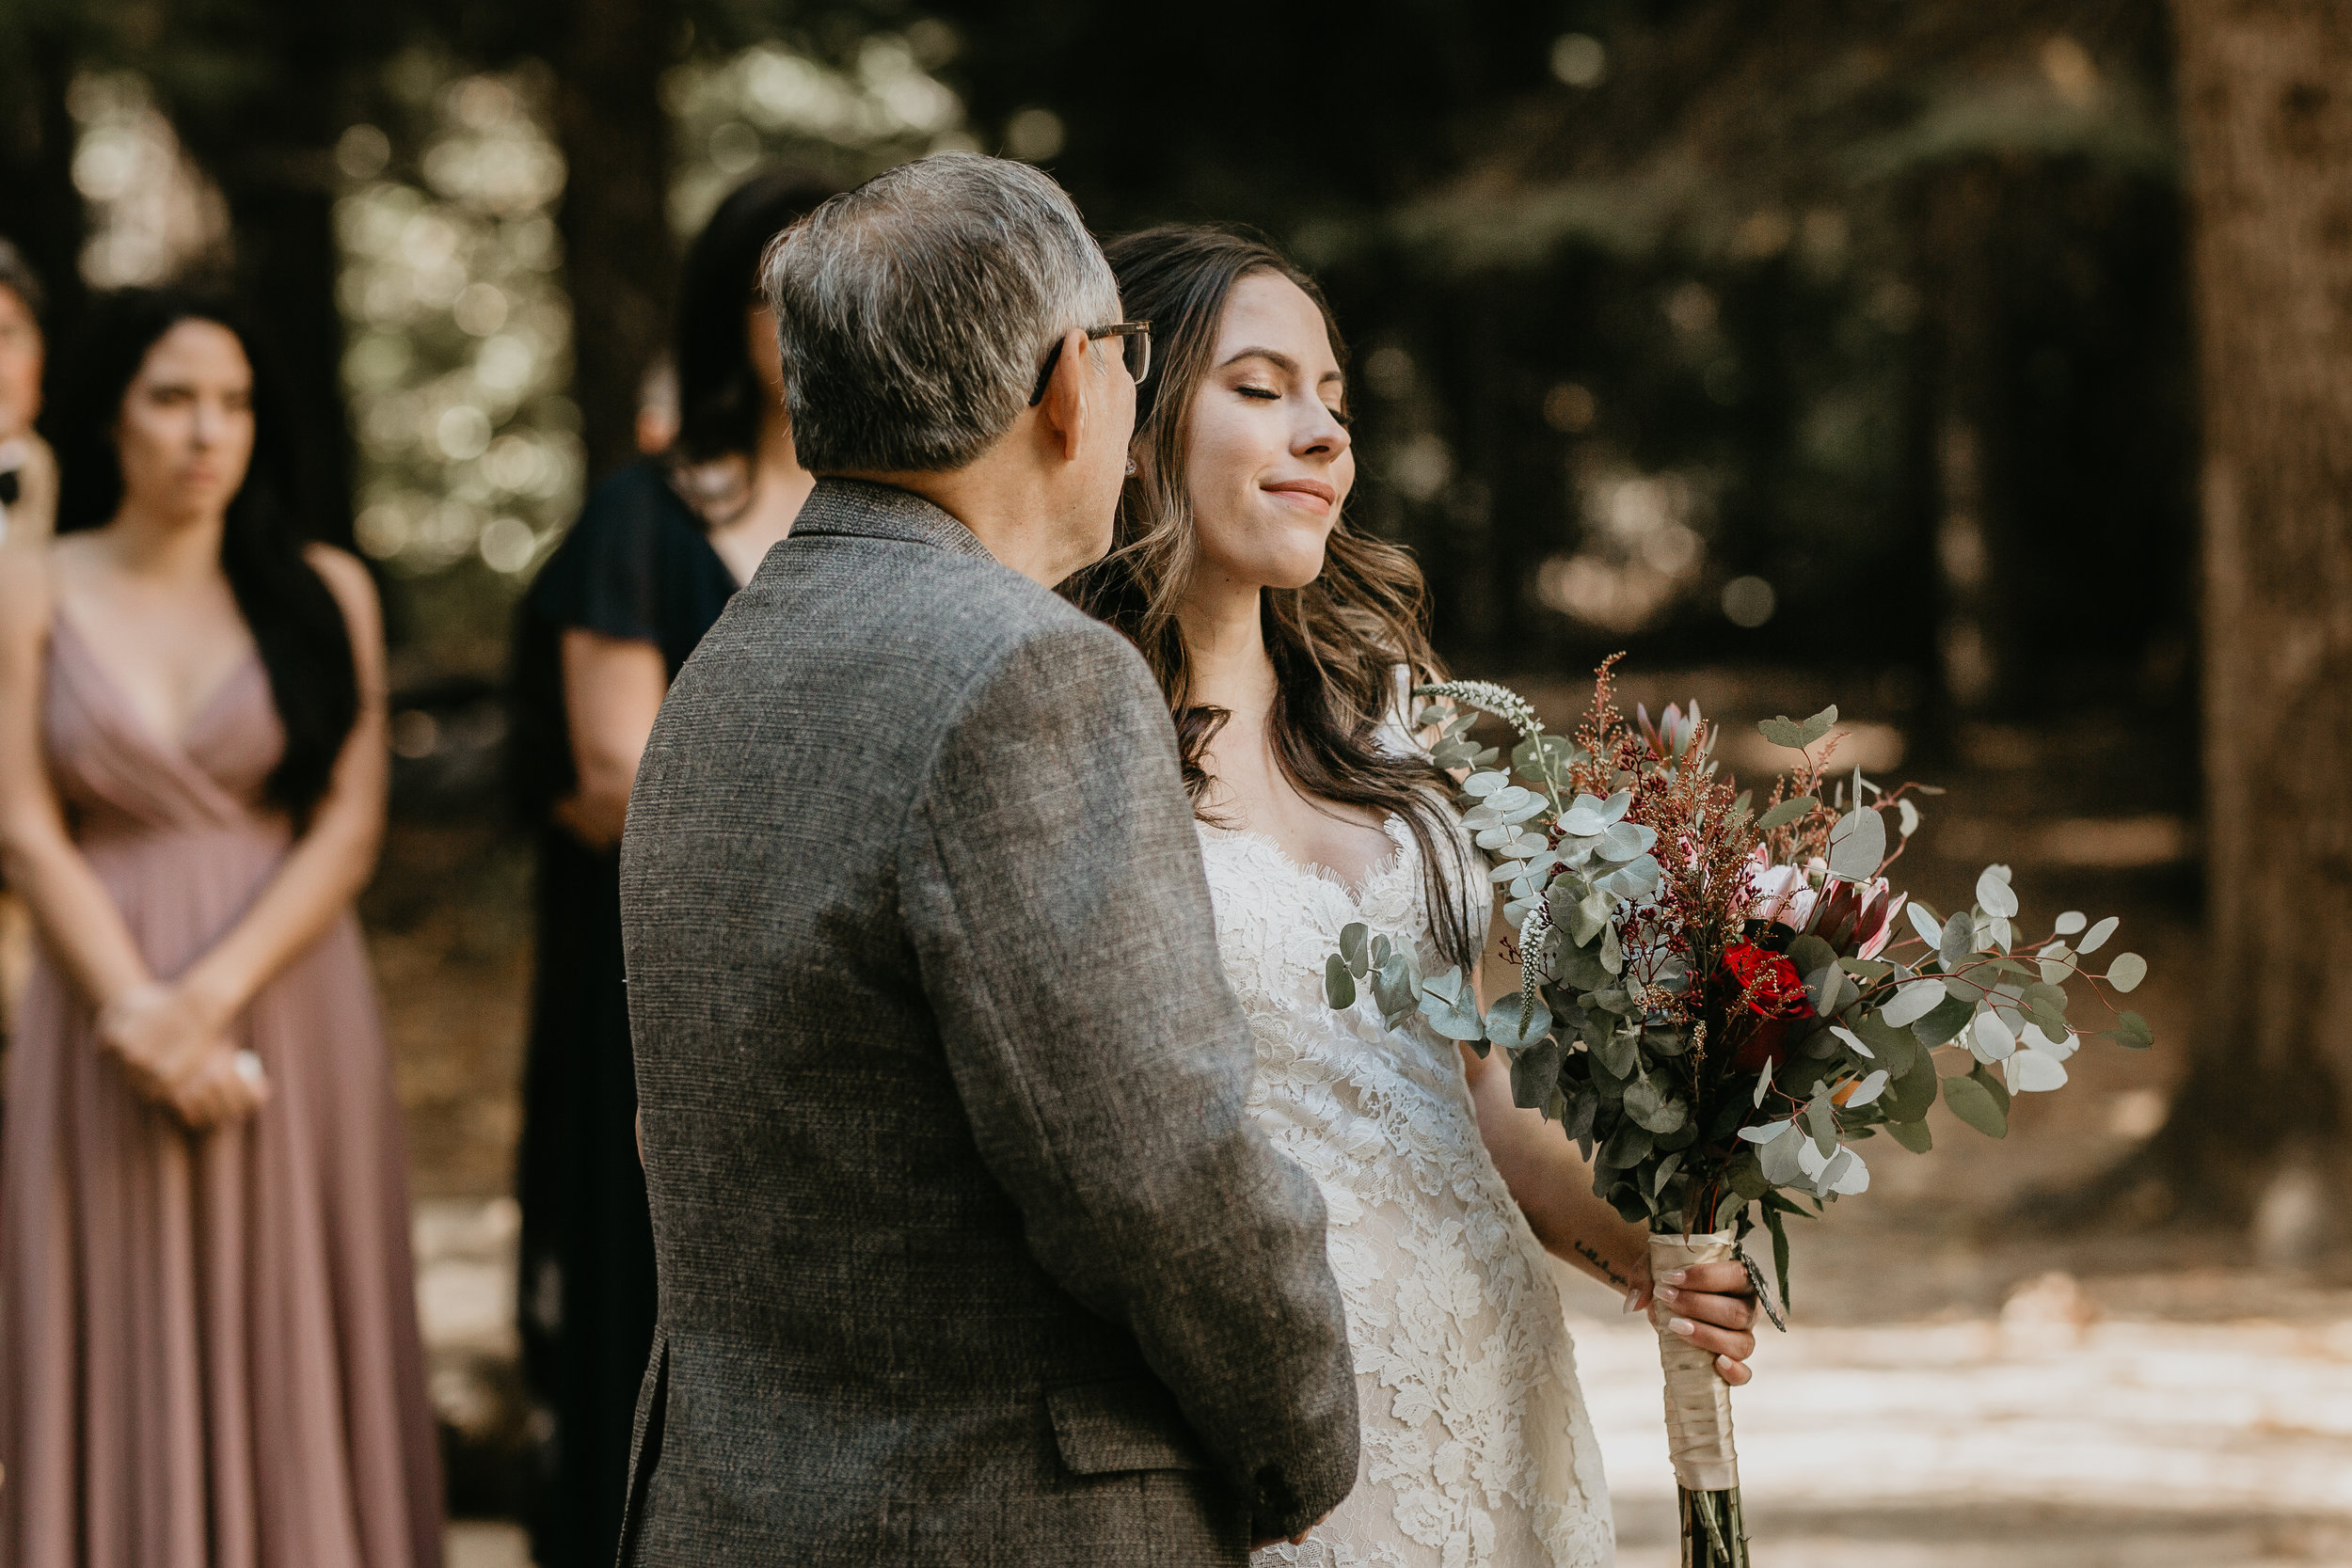 nicole-daacke-photography-intimate-elopement-wedding-yosemite-national-park-california-taft-point-sunset-photos-yosemite-valley-tunnel-view-first-look-sunrise-golden-granite-hiking-adventure-wedding-adventurous-elopement-photographer-44.jpg